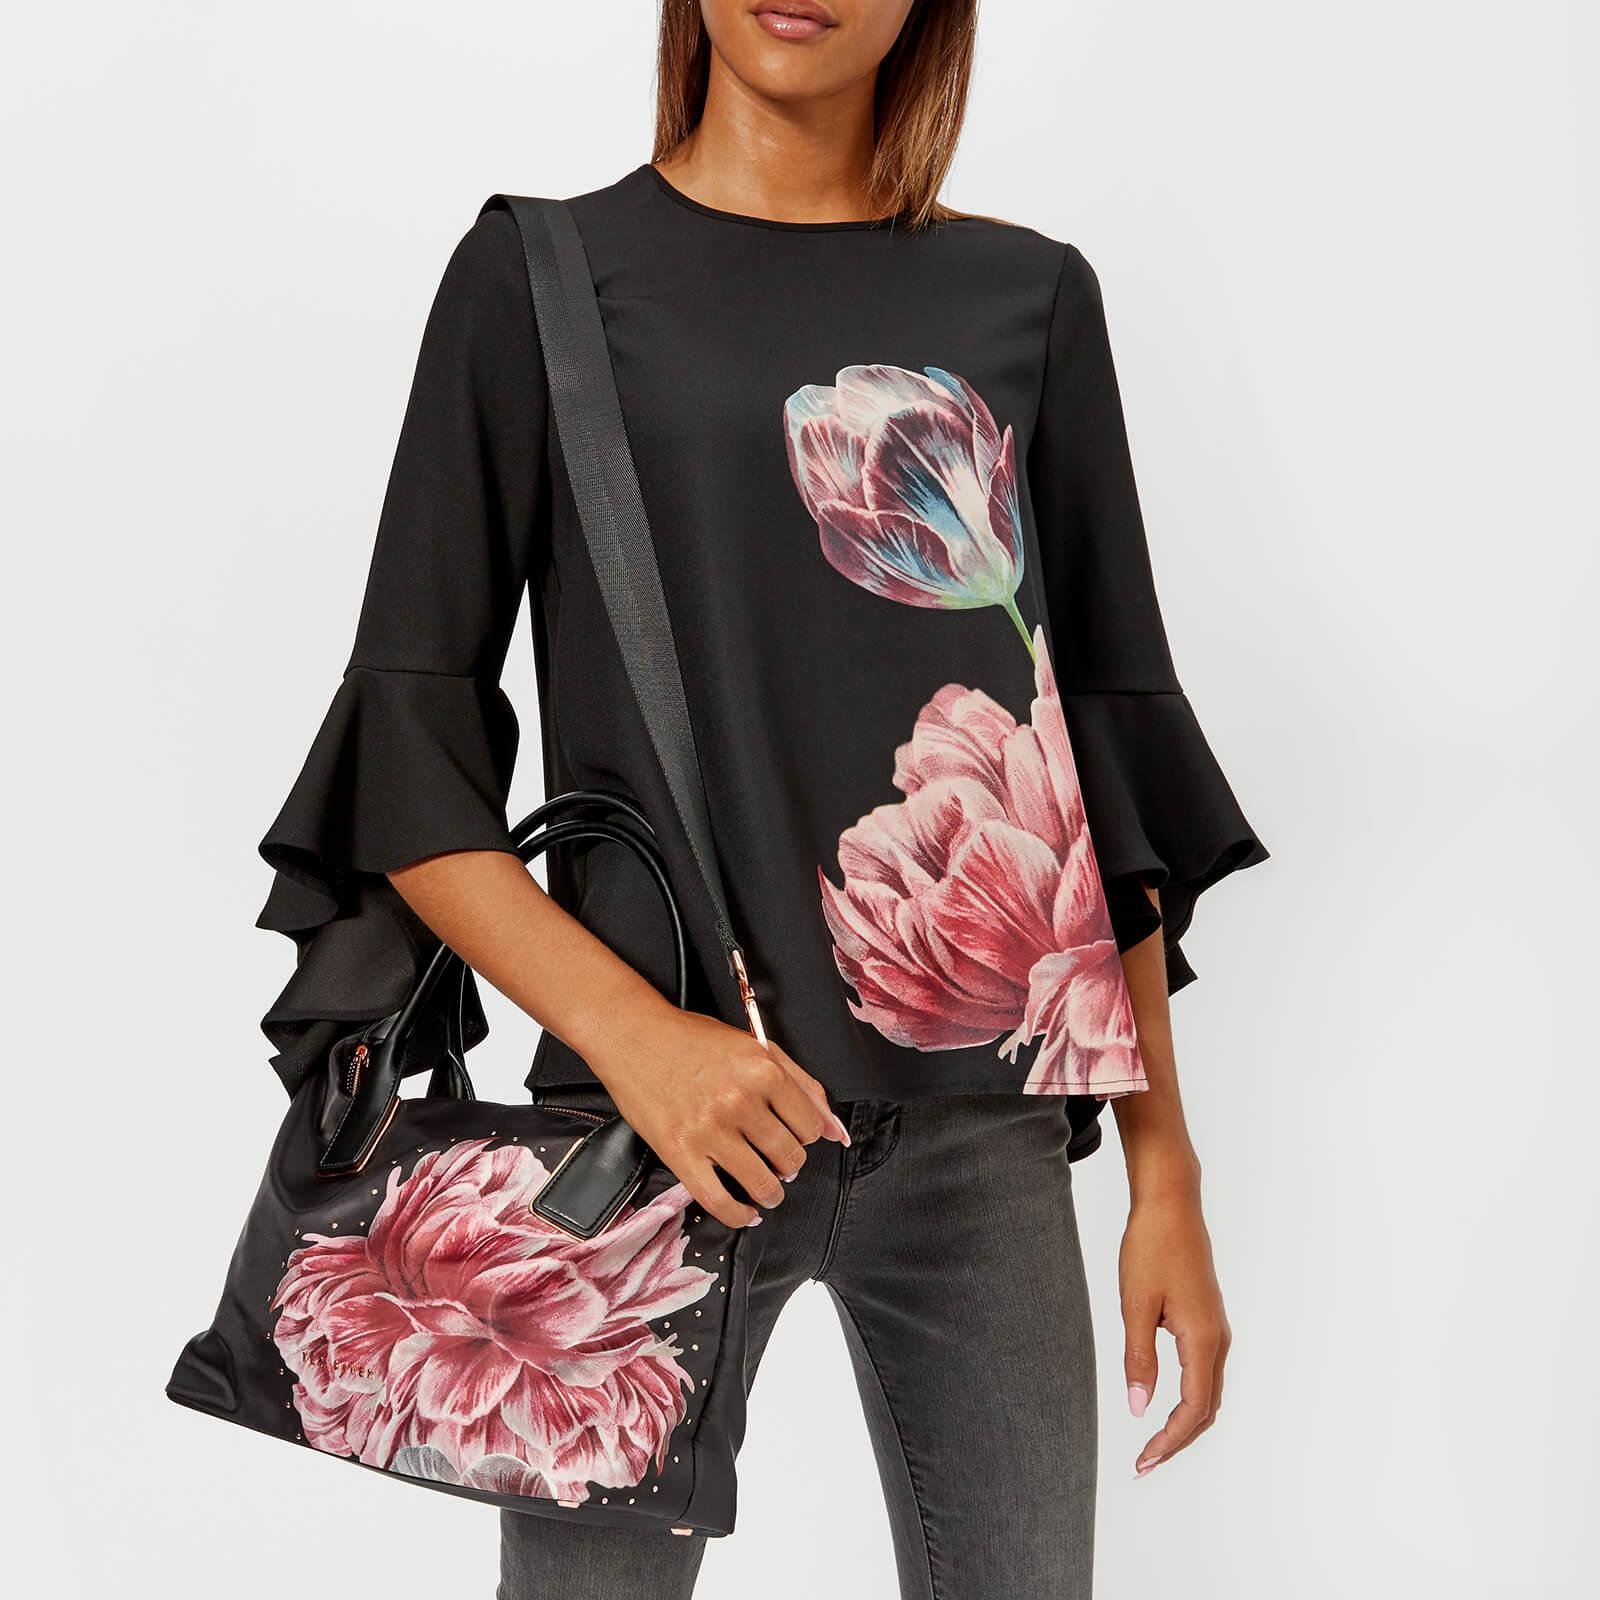 deb8d51fb37208 Lyst ted baker llisa tranquility small nylon tote bag jpg 1600x1600 Tote bag  tranquility floral